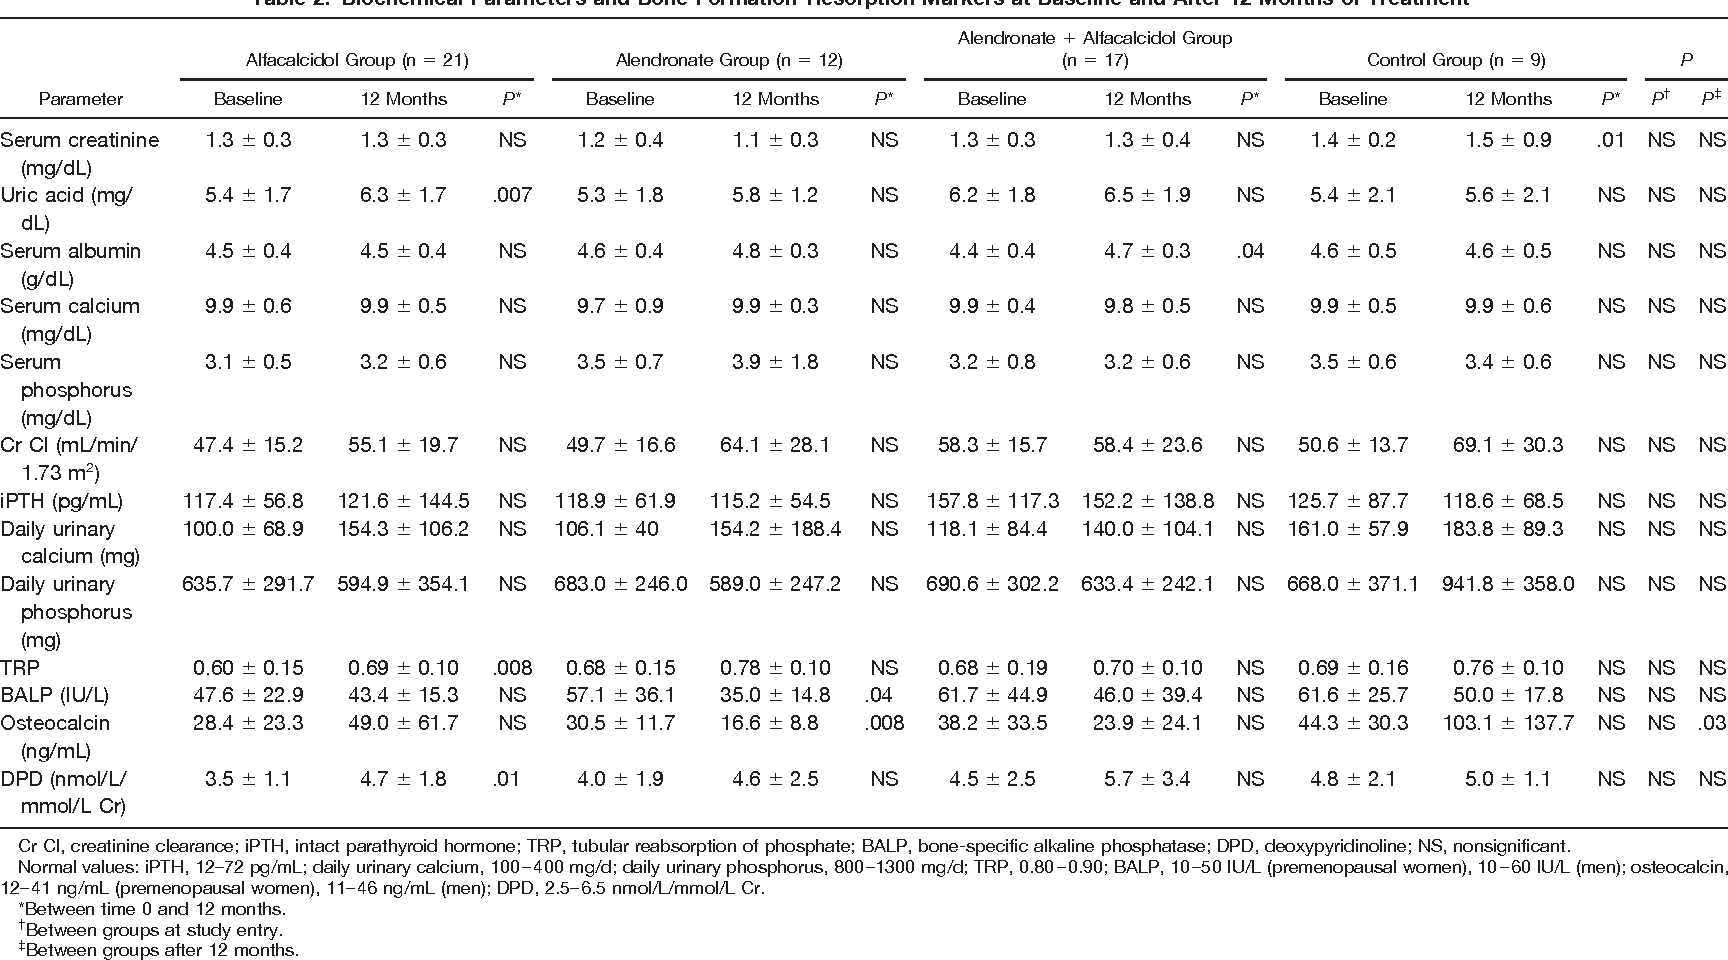 Table 2. Biochemical Parameters and Bone Formation-Resorption Markers at Baseline and After 12 Months of Treatment